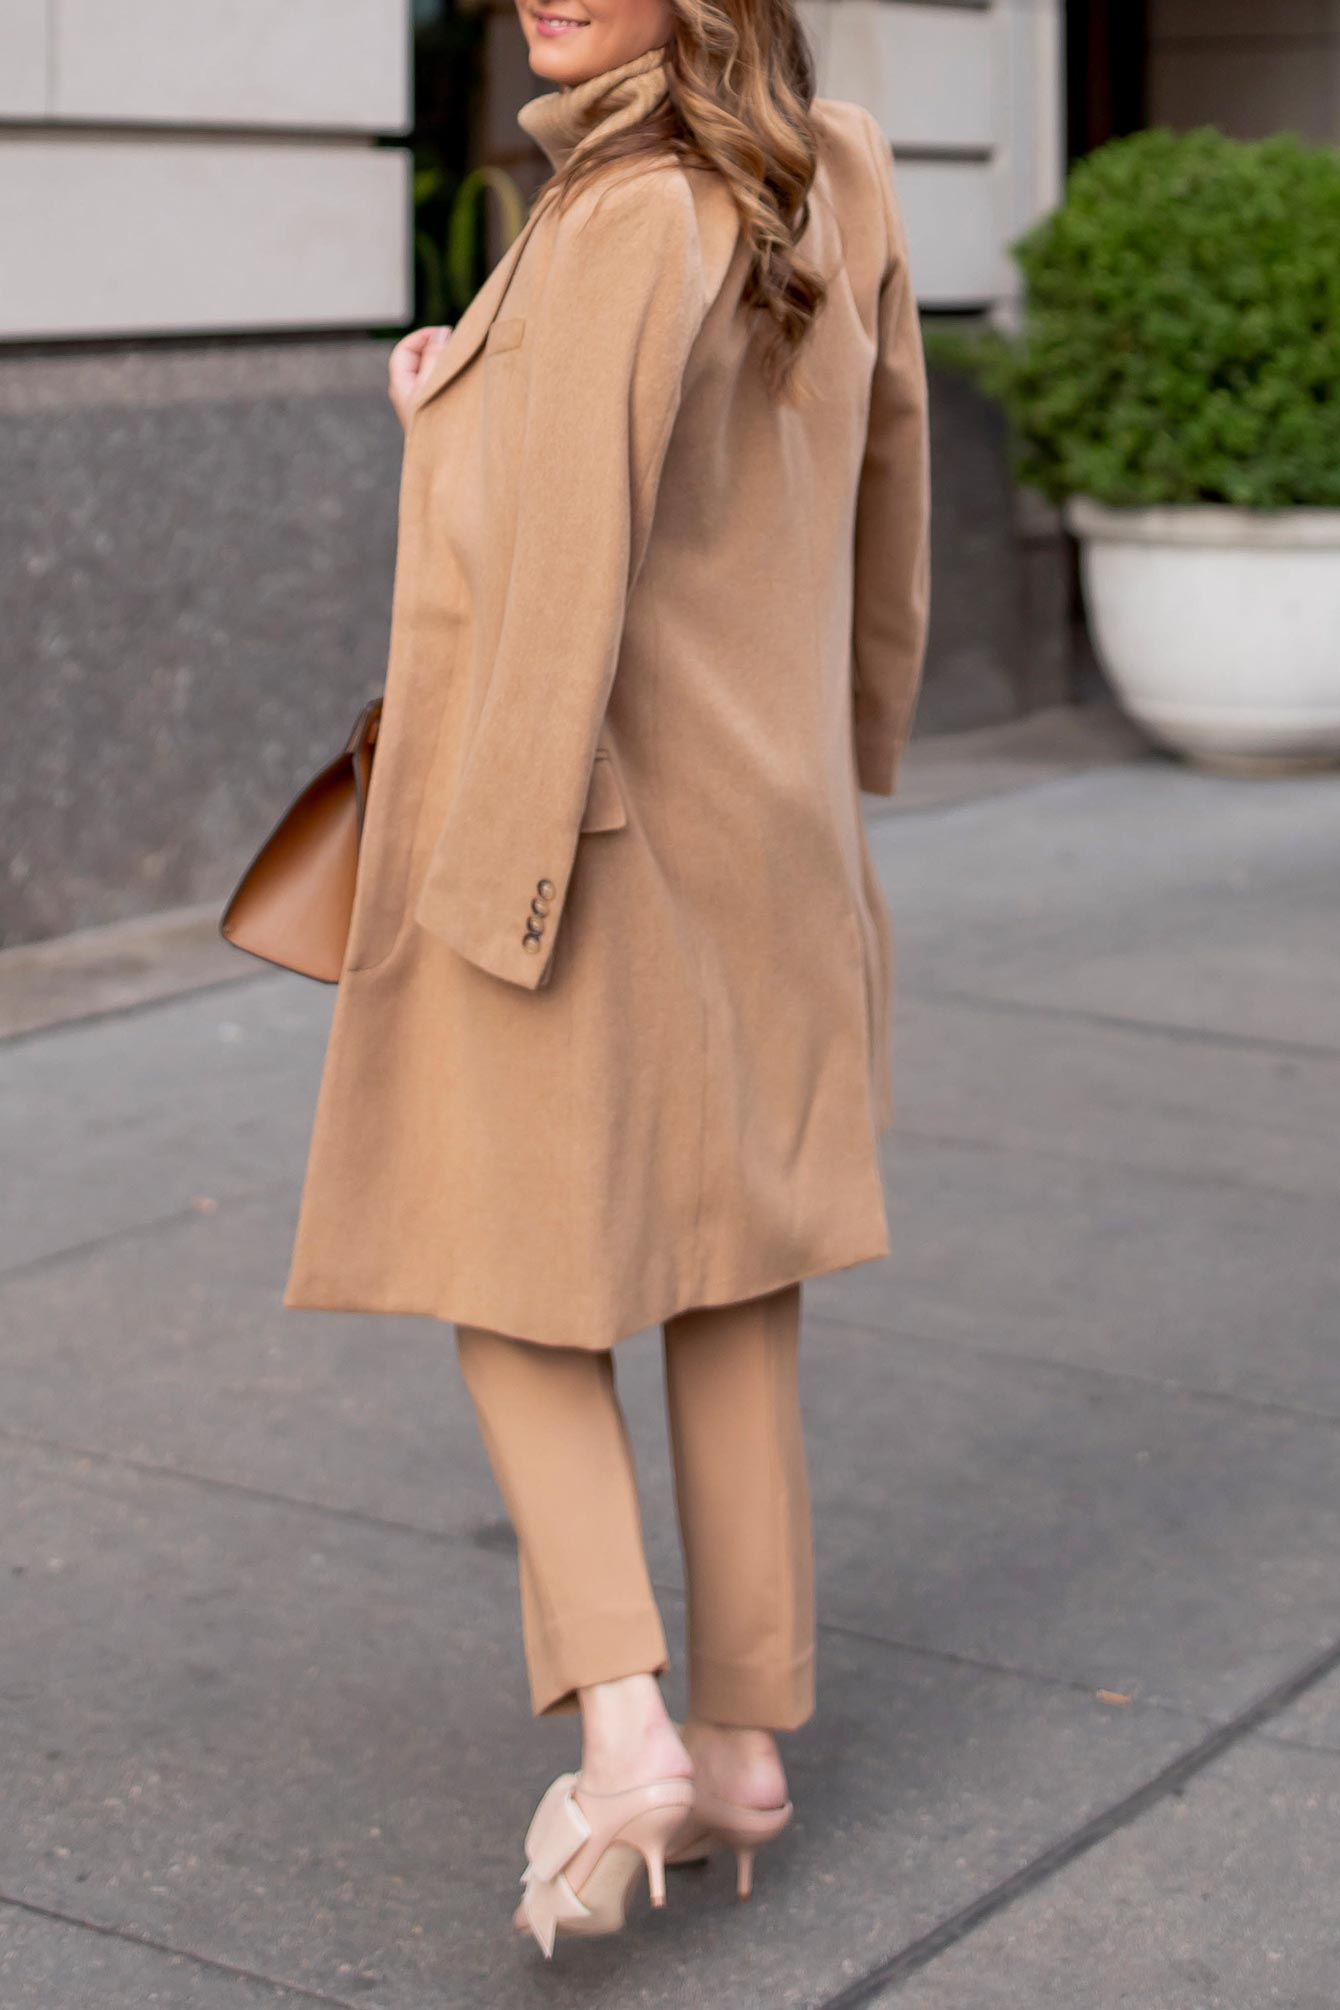 Polo Ralph Lauren Camel Coat